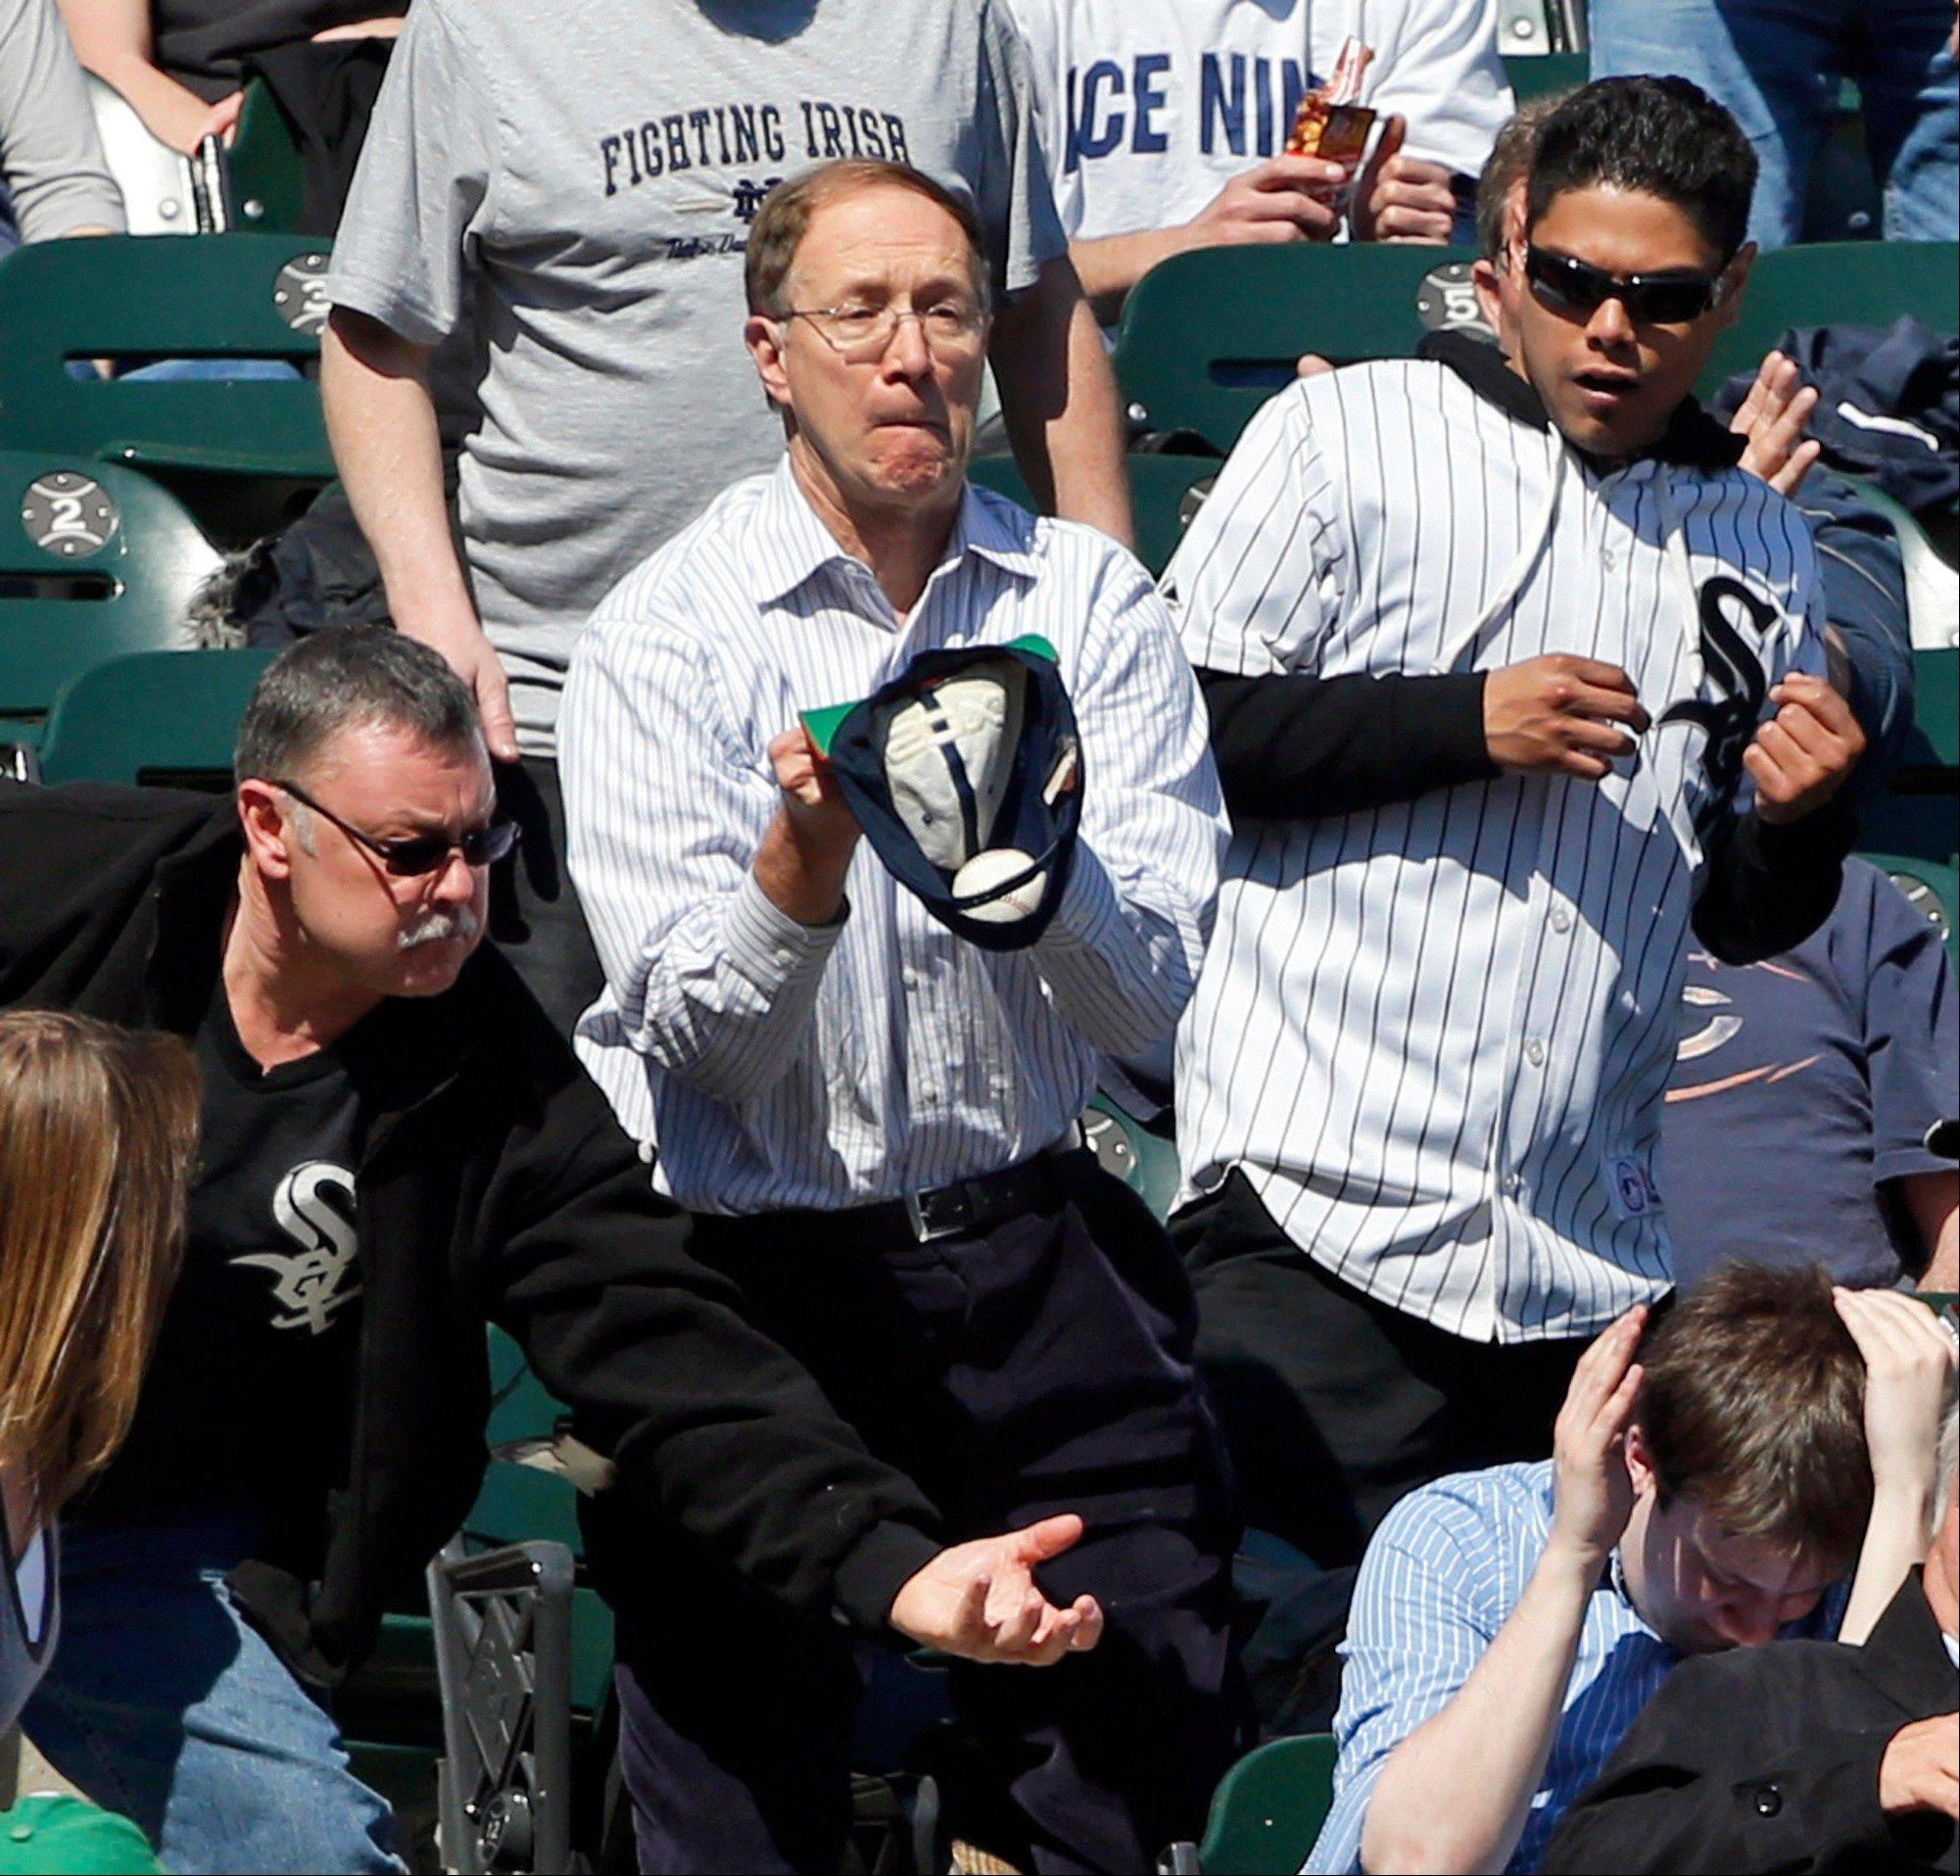 A fan catches a foul ball with his ball cap during the fifth inning of Kansas City's victory over the White Sox on Thursday at U.S. Cellular Field.